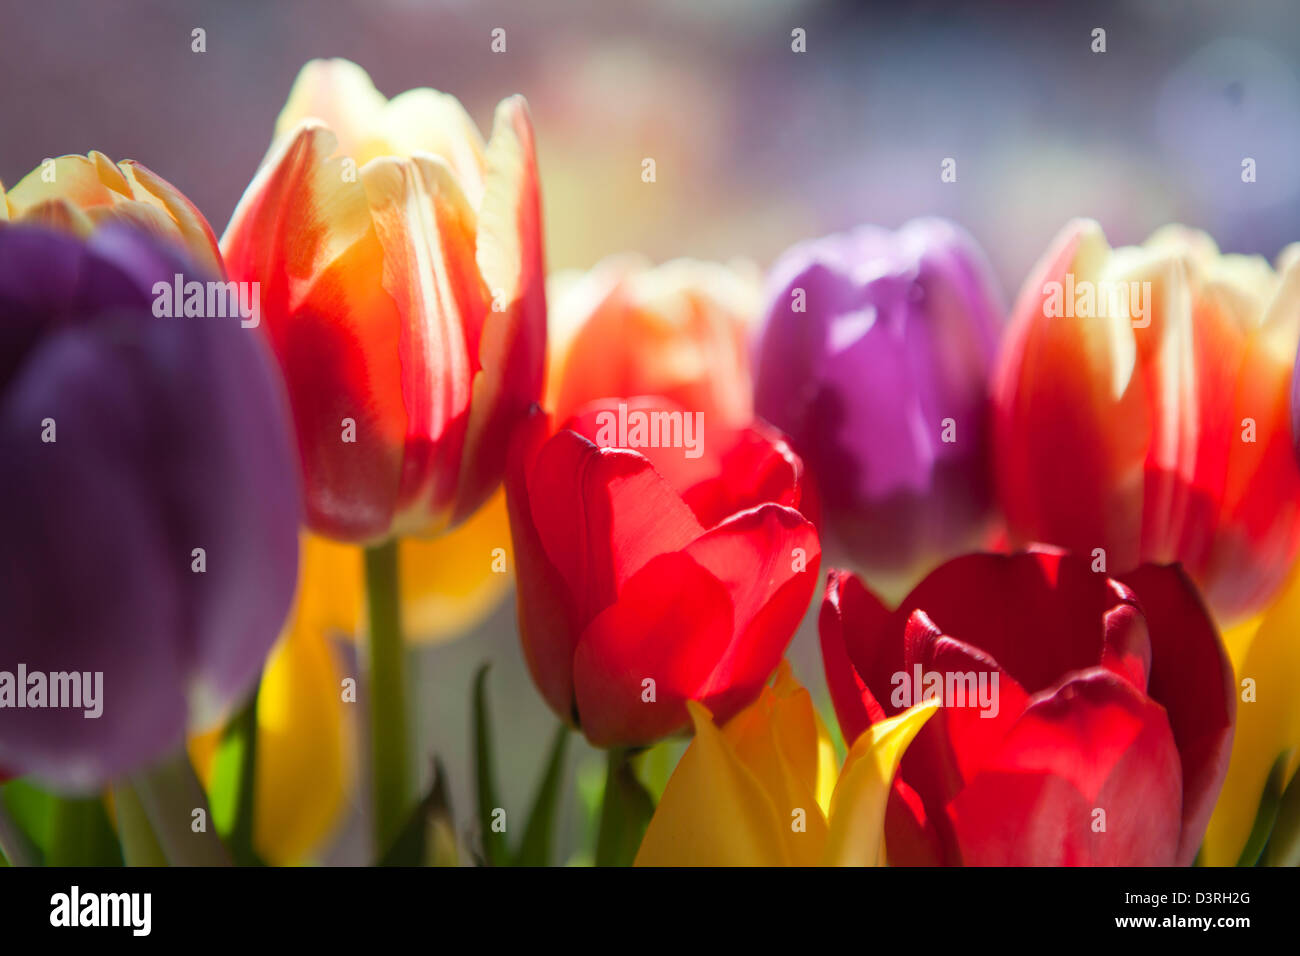 Backlit close-up of tulips in different colours; red, yellow, purple - Stock Image